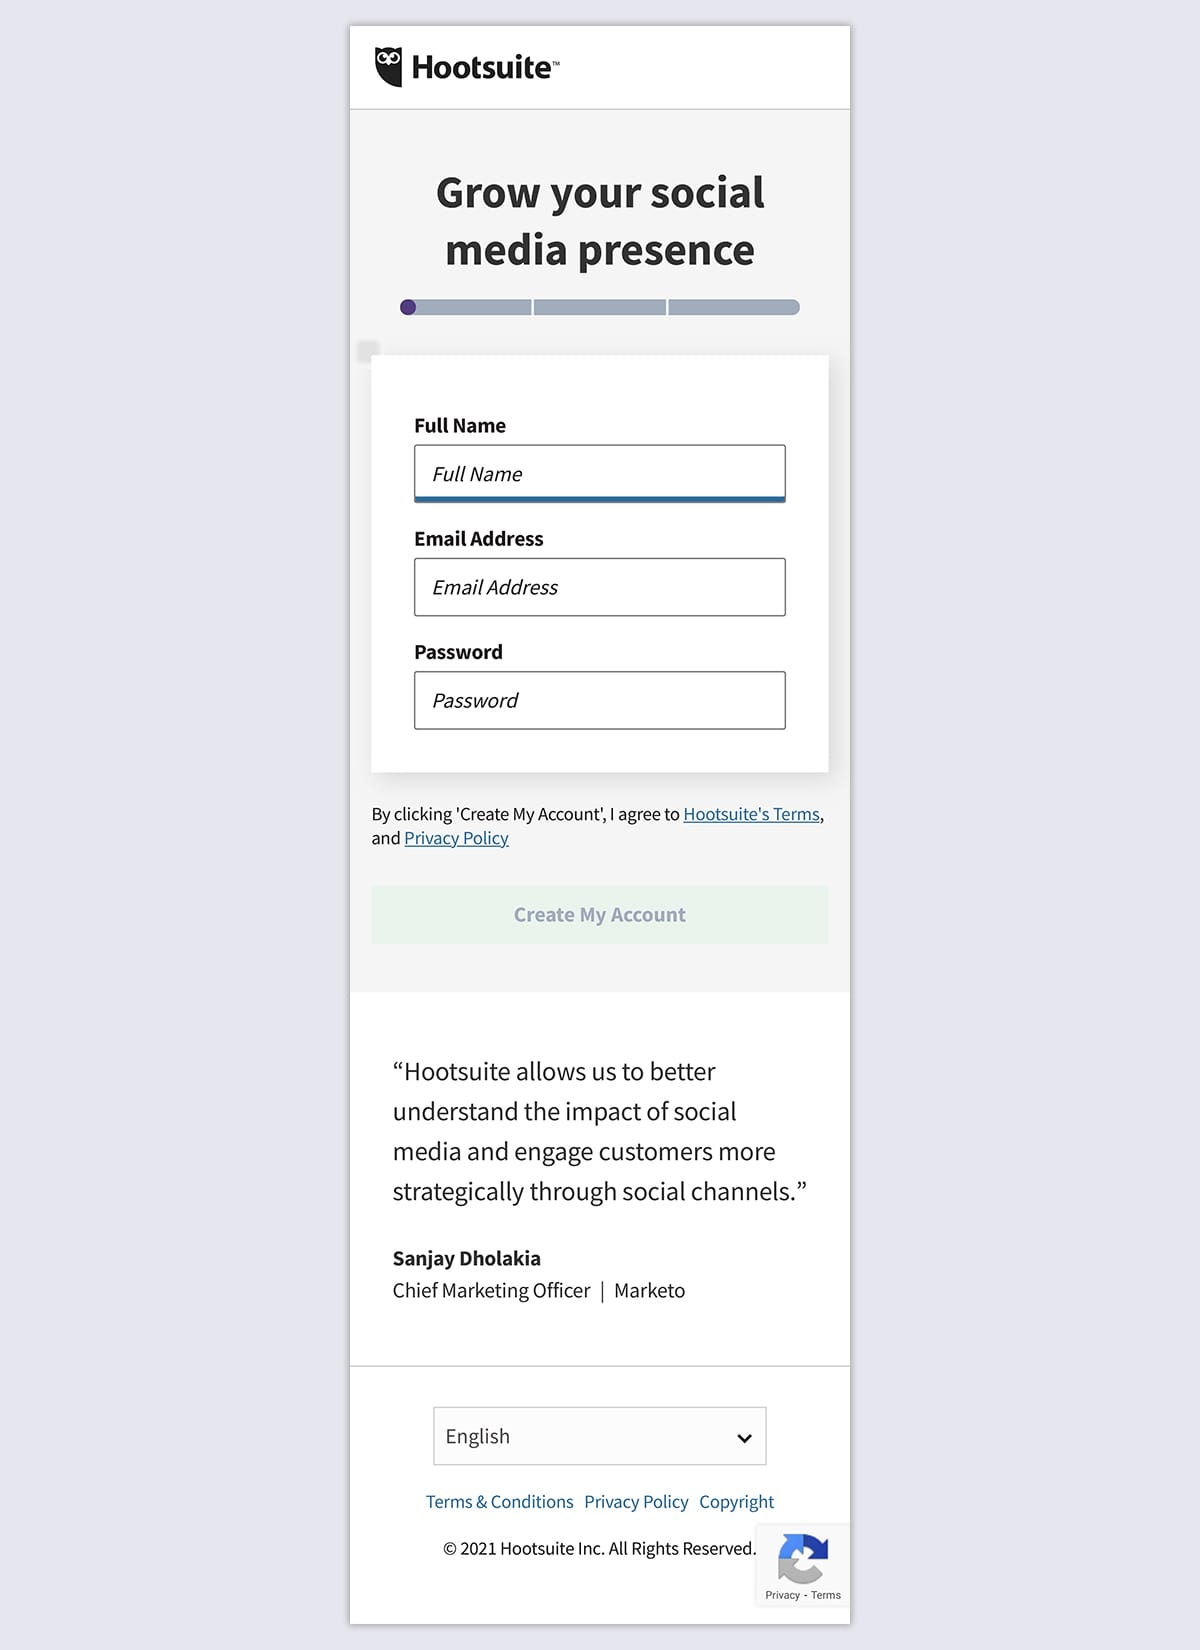 Hootsuite Mobile Landing Page Example